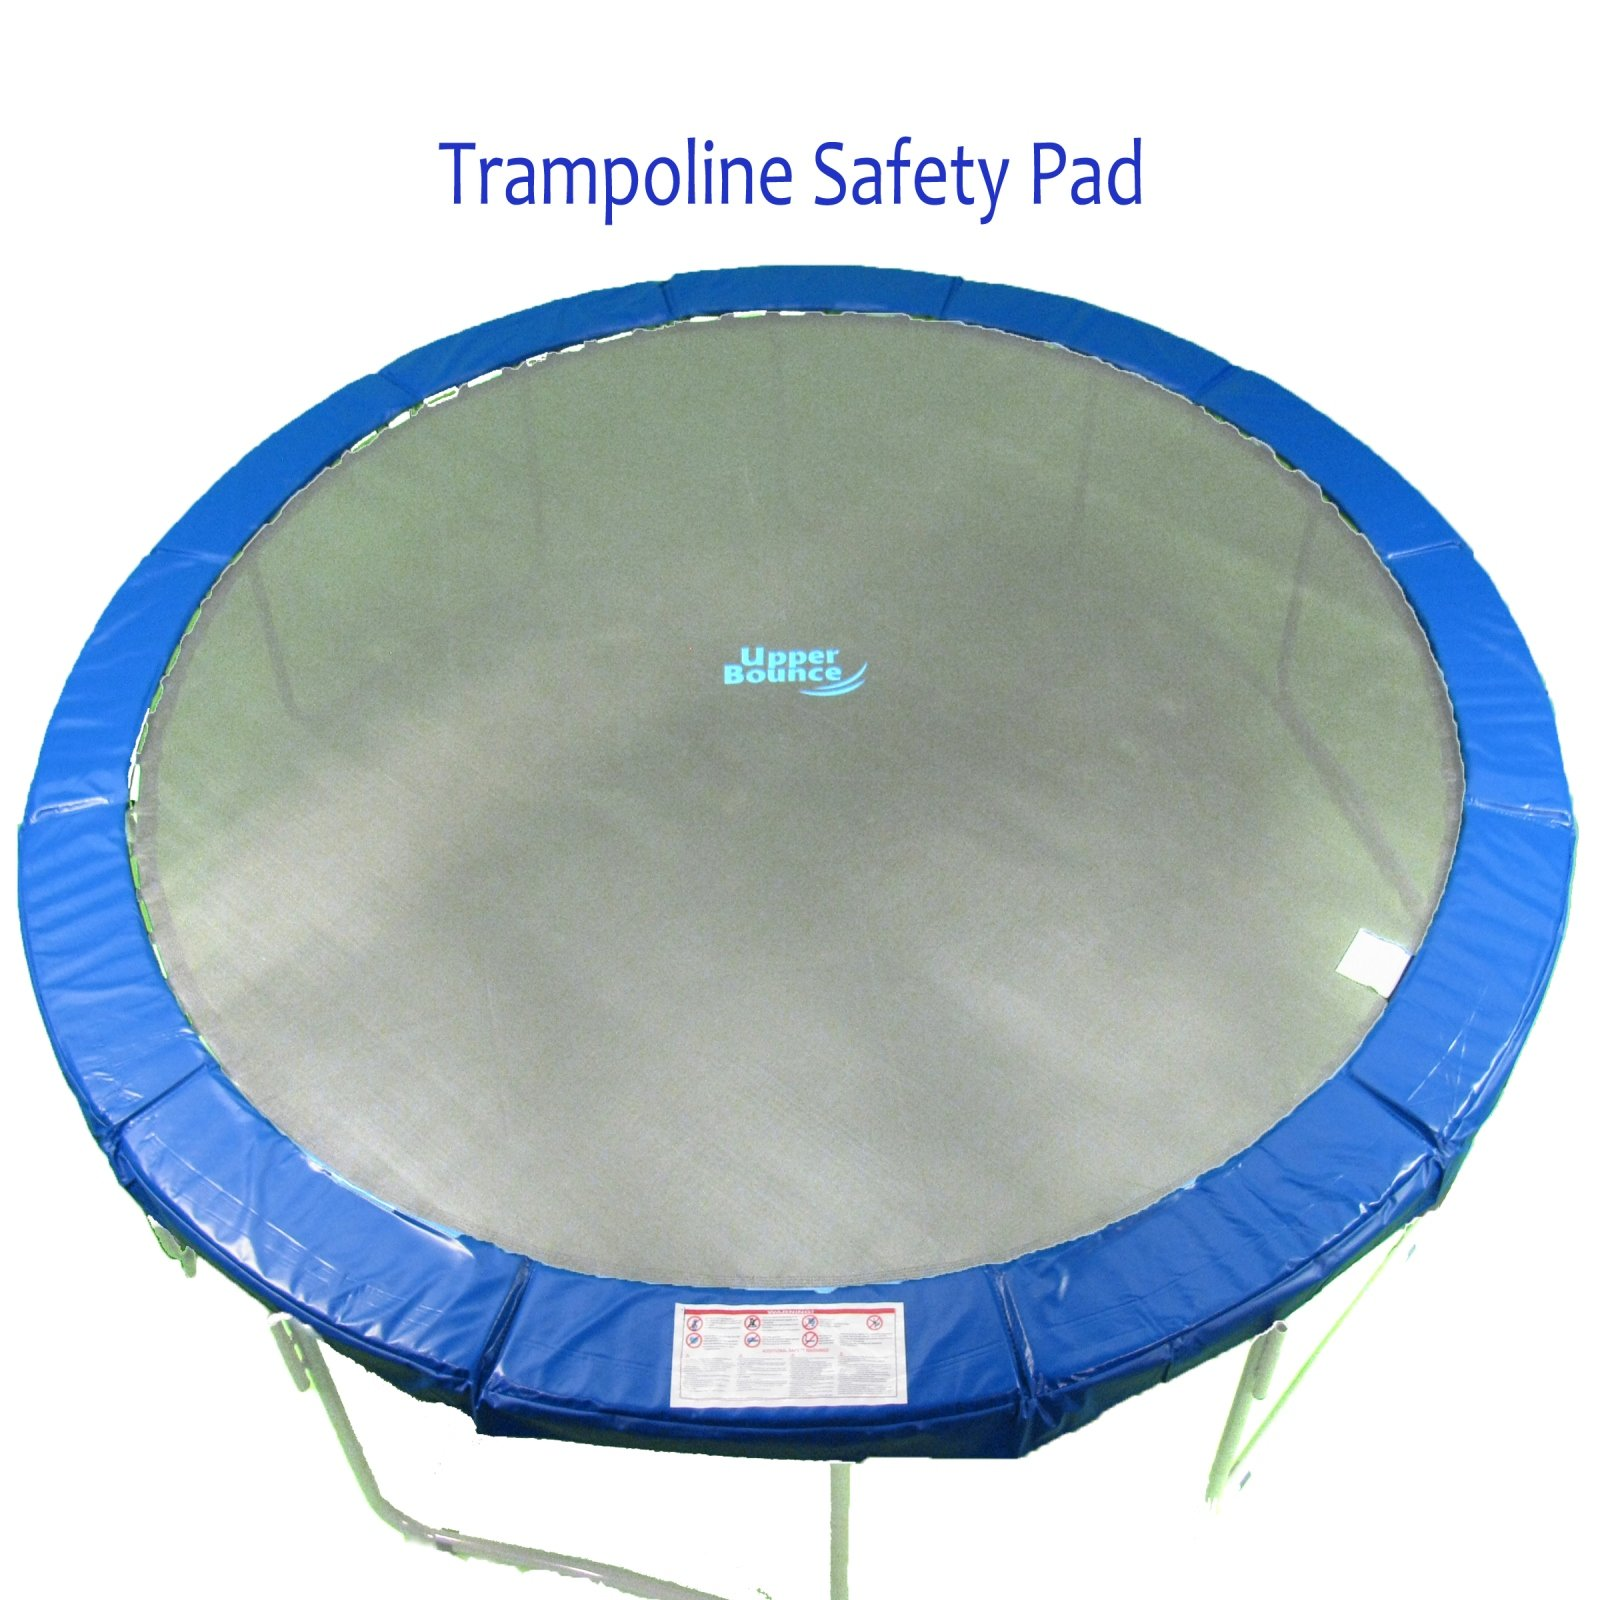 14' Super Trampoline Safety Pad (Spring Cover) Fits for 14 FT. Round Trampoline Frames. 10'' wide - Blue by Upper Bounce